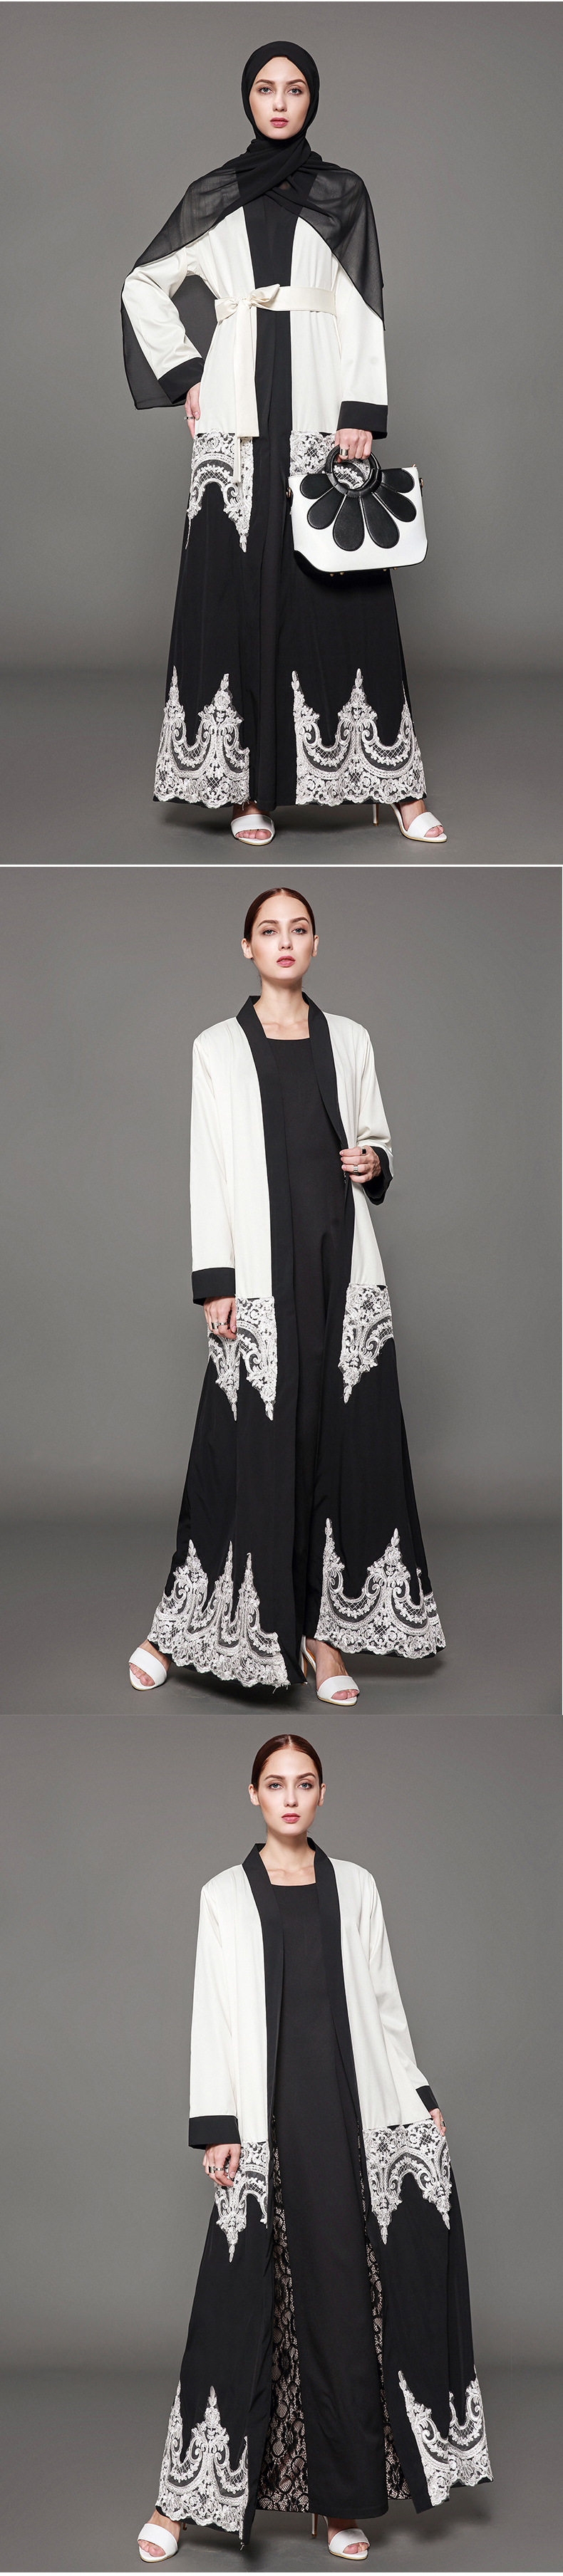 Fandy Finds Women Lace Middle-East Muslim Robe Lady Praying Clothing Solid Color Lace Up Emboridery Female Big Size Long Gown